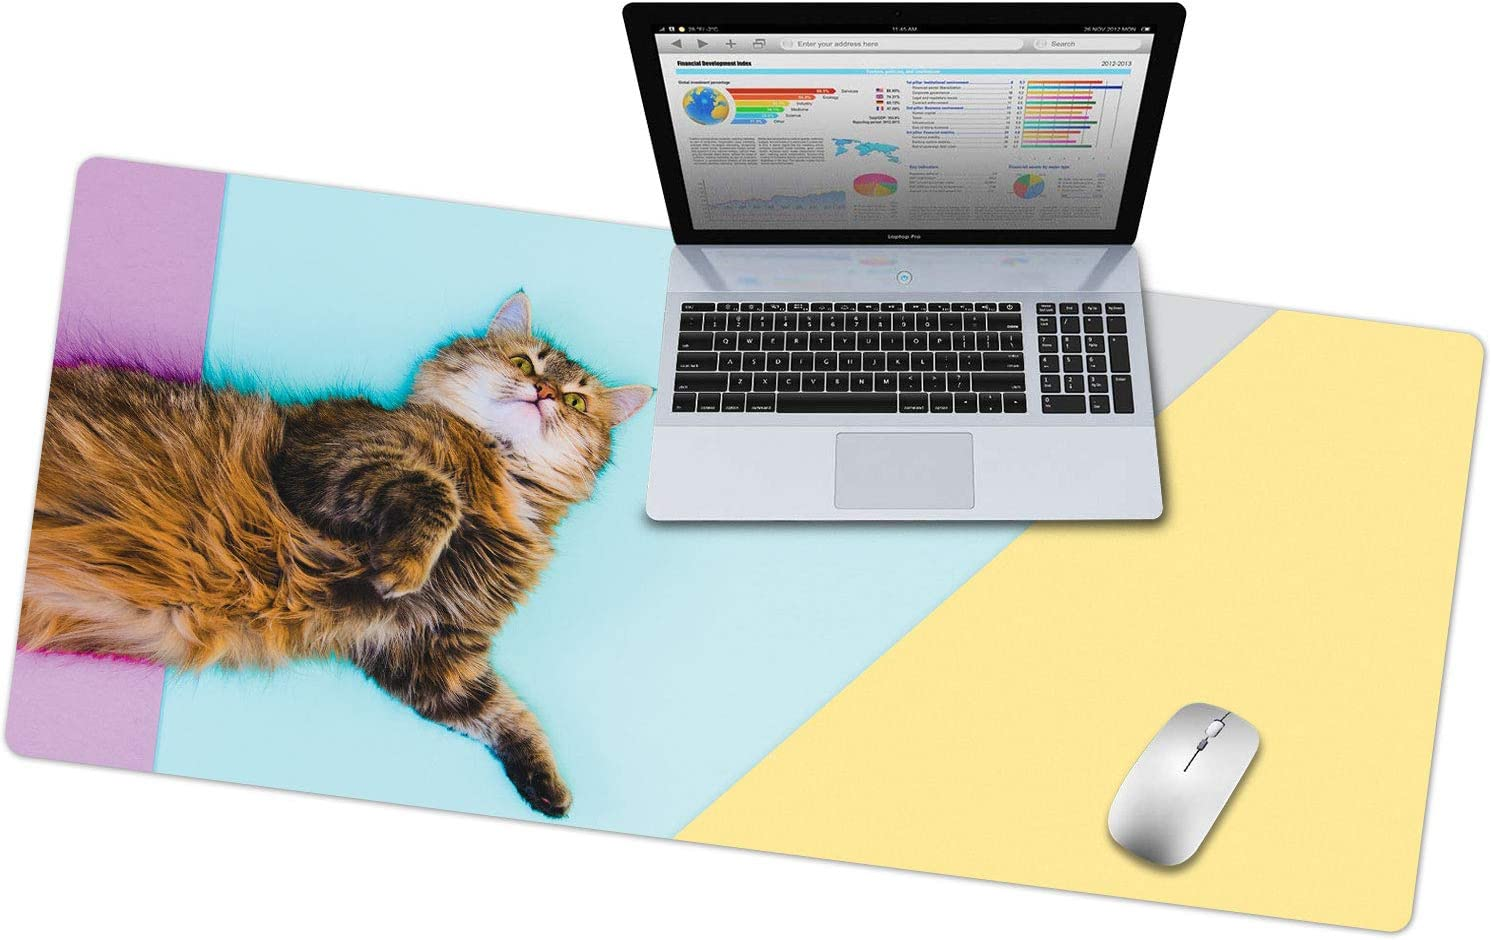 """French Koko Large Mouse Pad, Desk Mat, Keyboard Pad, Desktop Home Office School Cute Decor Big Extended Laptop Protector Computer Accessories Mousepad Women Girls Kitty XL 31""""x15"""" (Pet Lazy Cat)"""